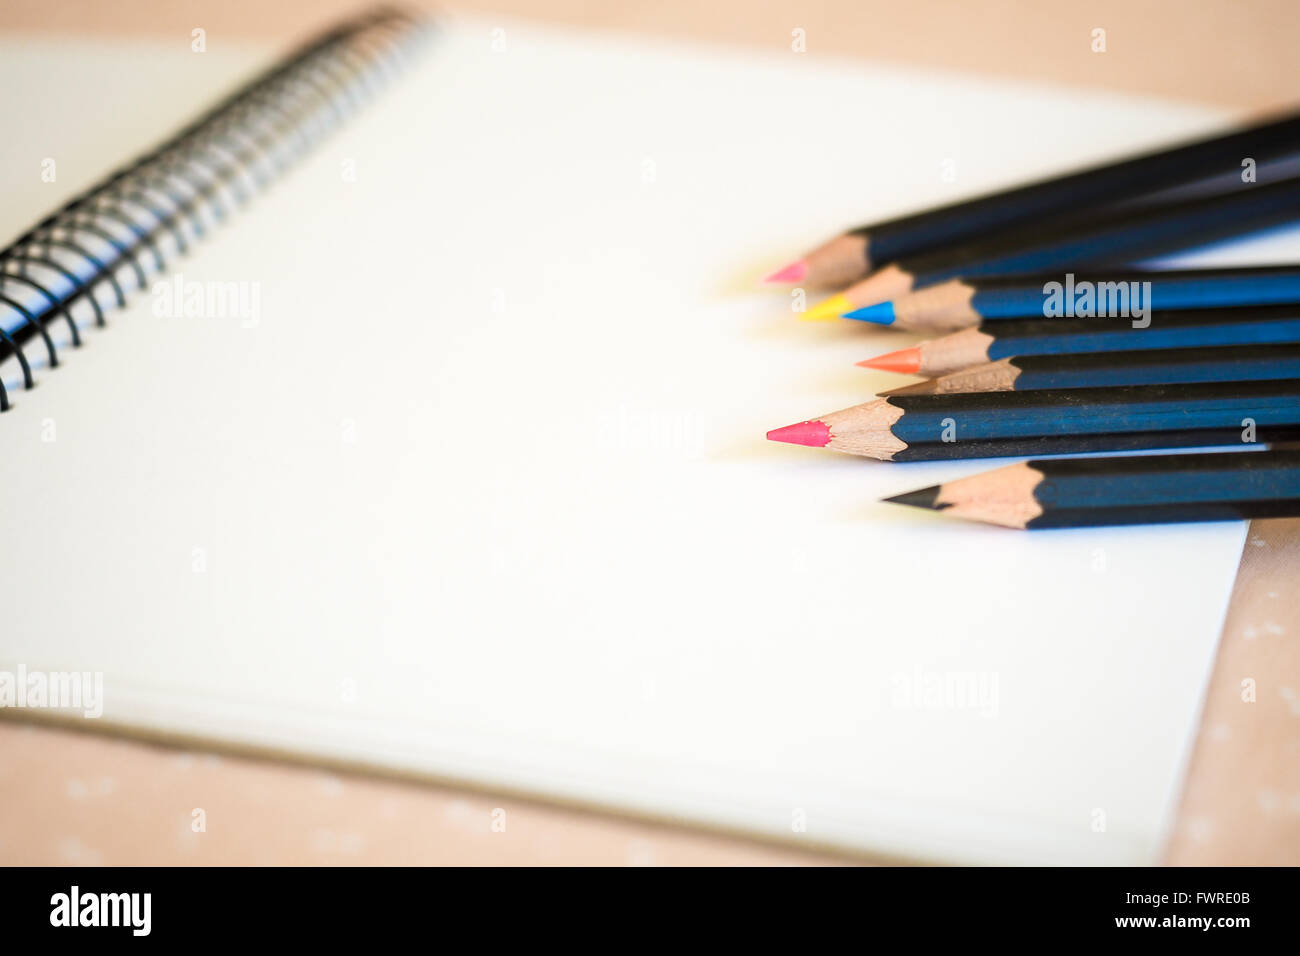 Sketch Pad with Colored Pencils - Stock Image